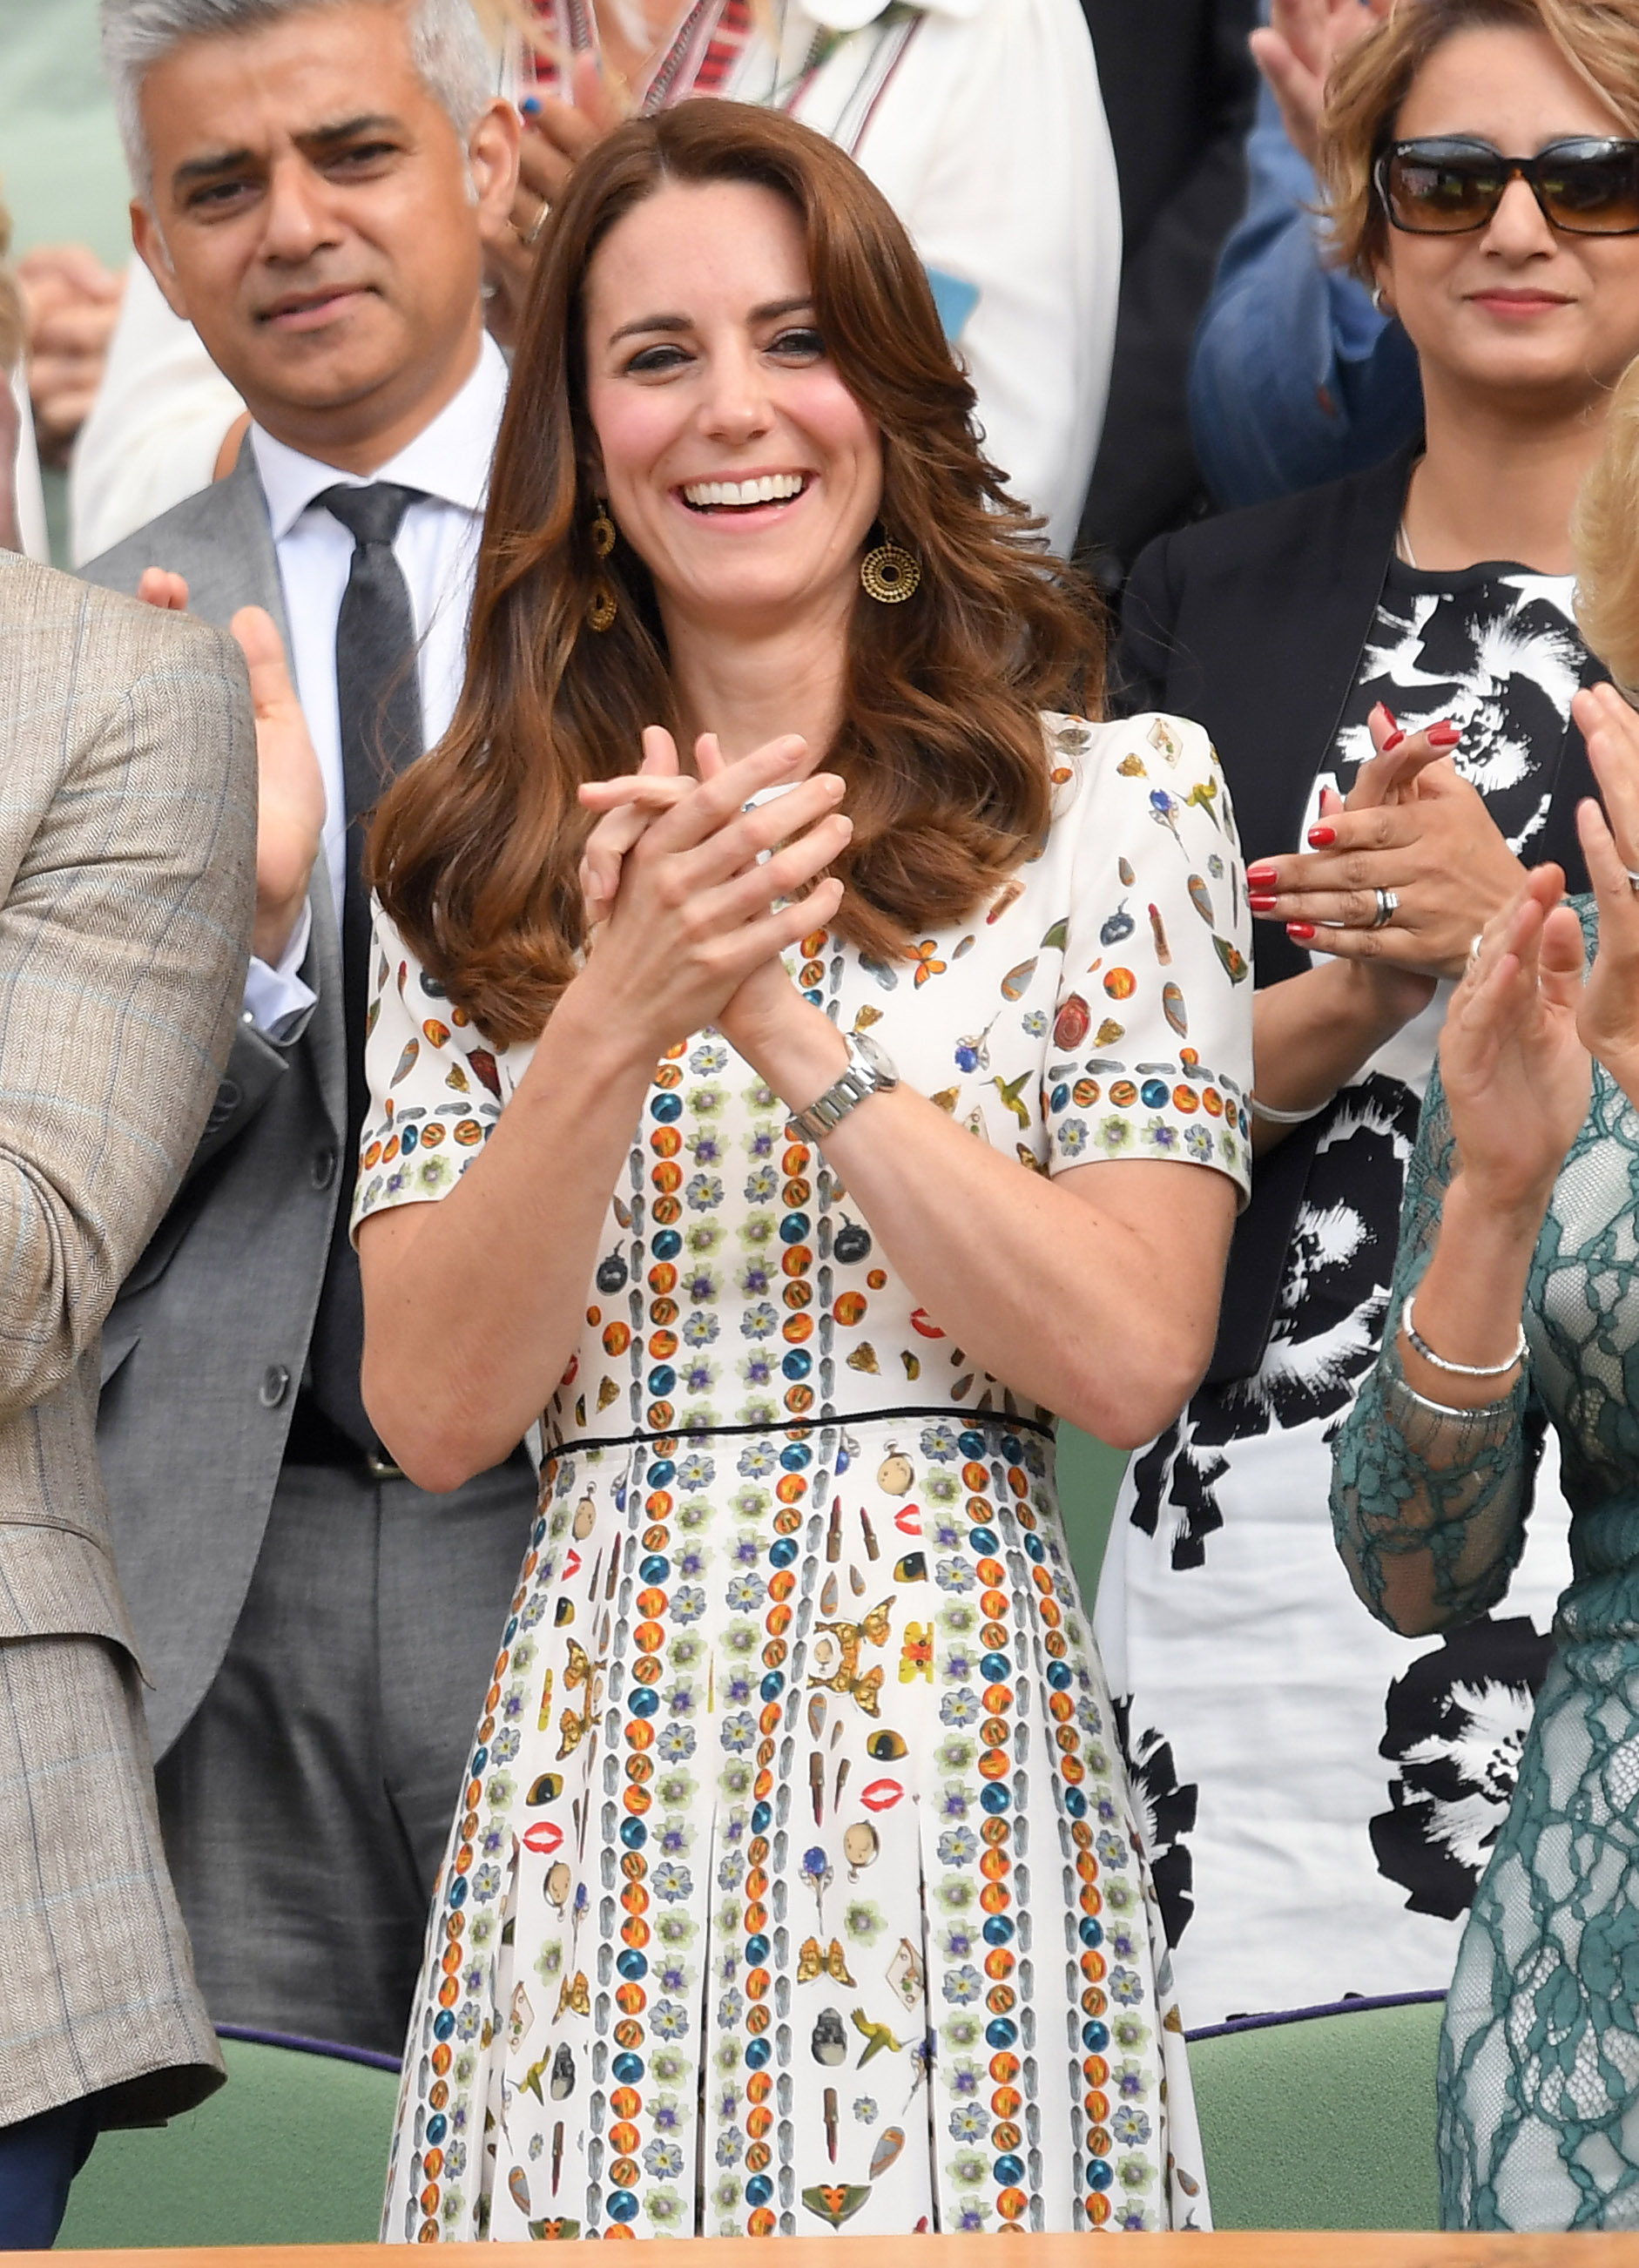 Catherine, Duchess of Cambridge attends the Men's Final of the Wimbledon Tennis Championships between Milos Raonic and Andy Murray at Wimbledon in London on July 10, 2016.